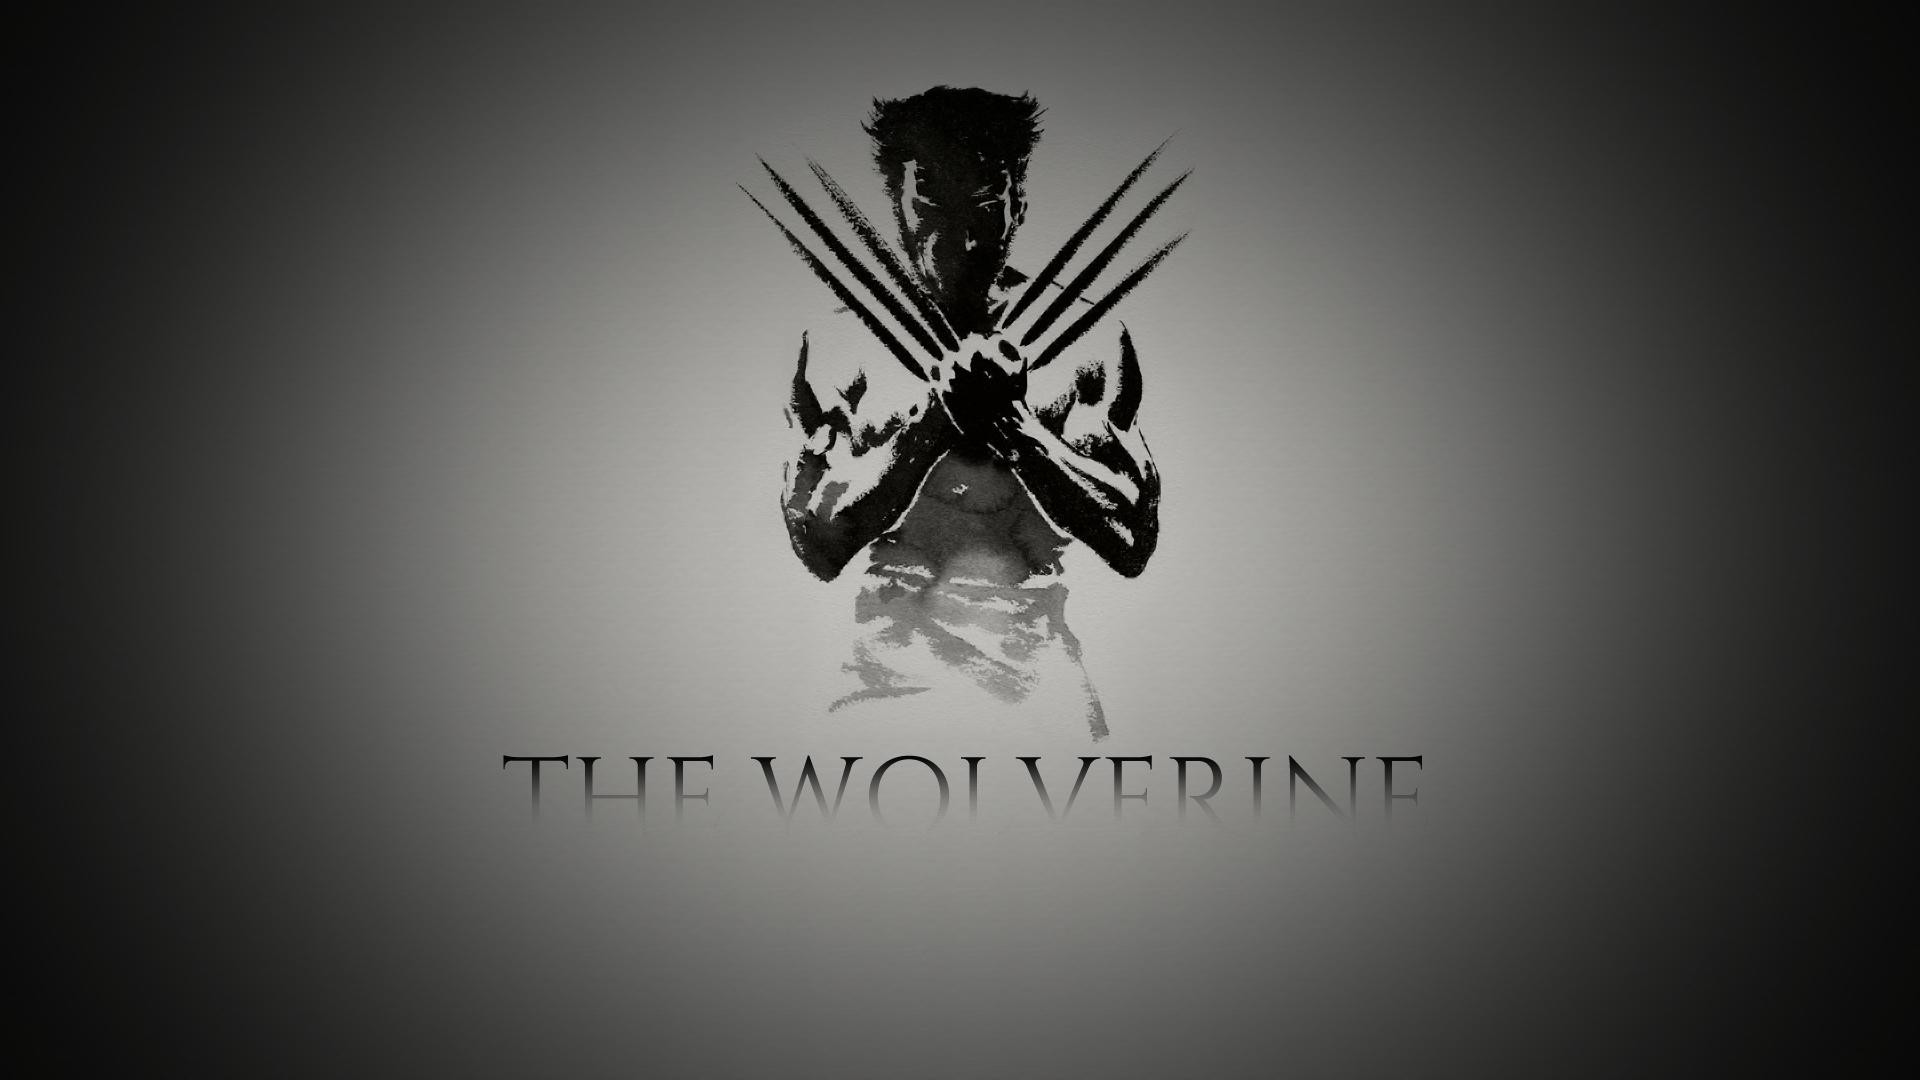 wolverine hd wallpapers 75 pictures wolverine hd wallpapers 75 pictures